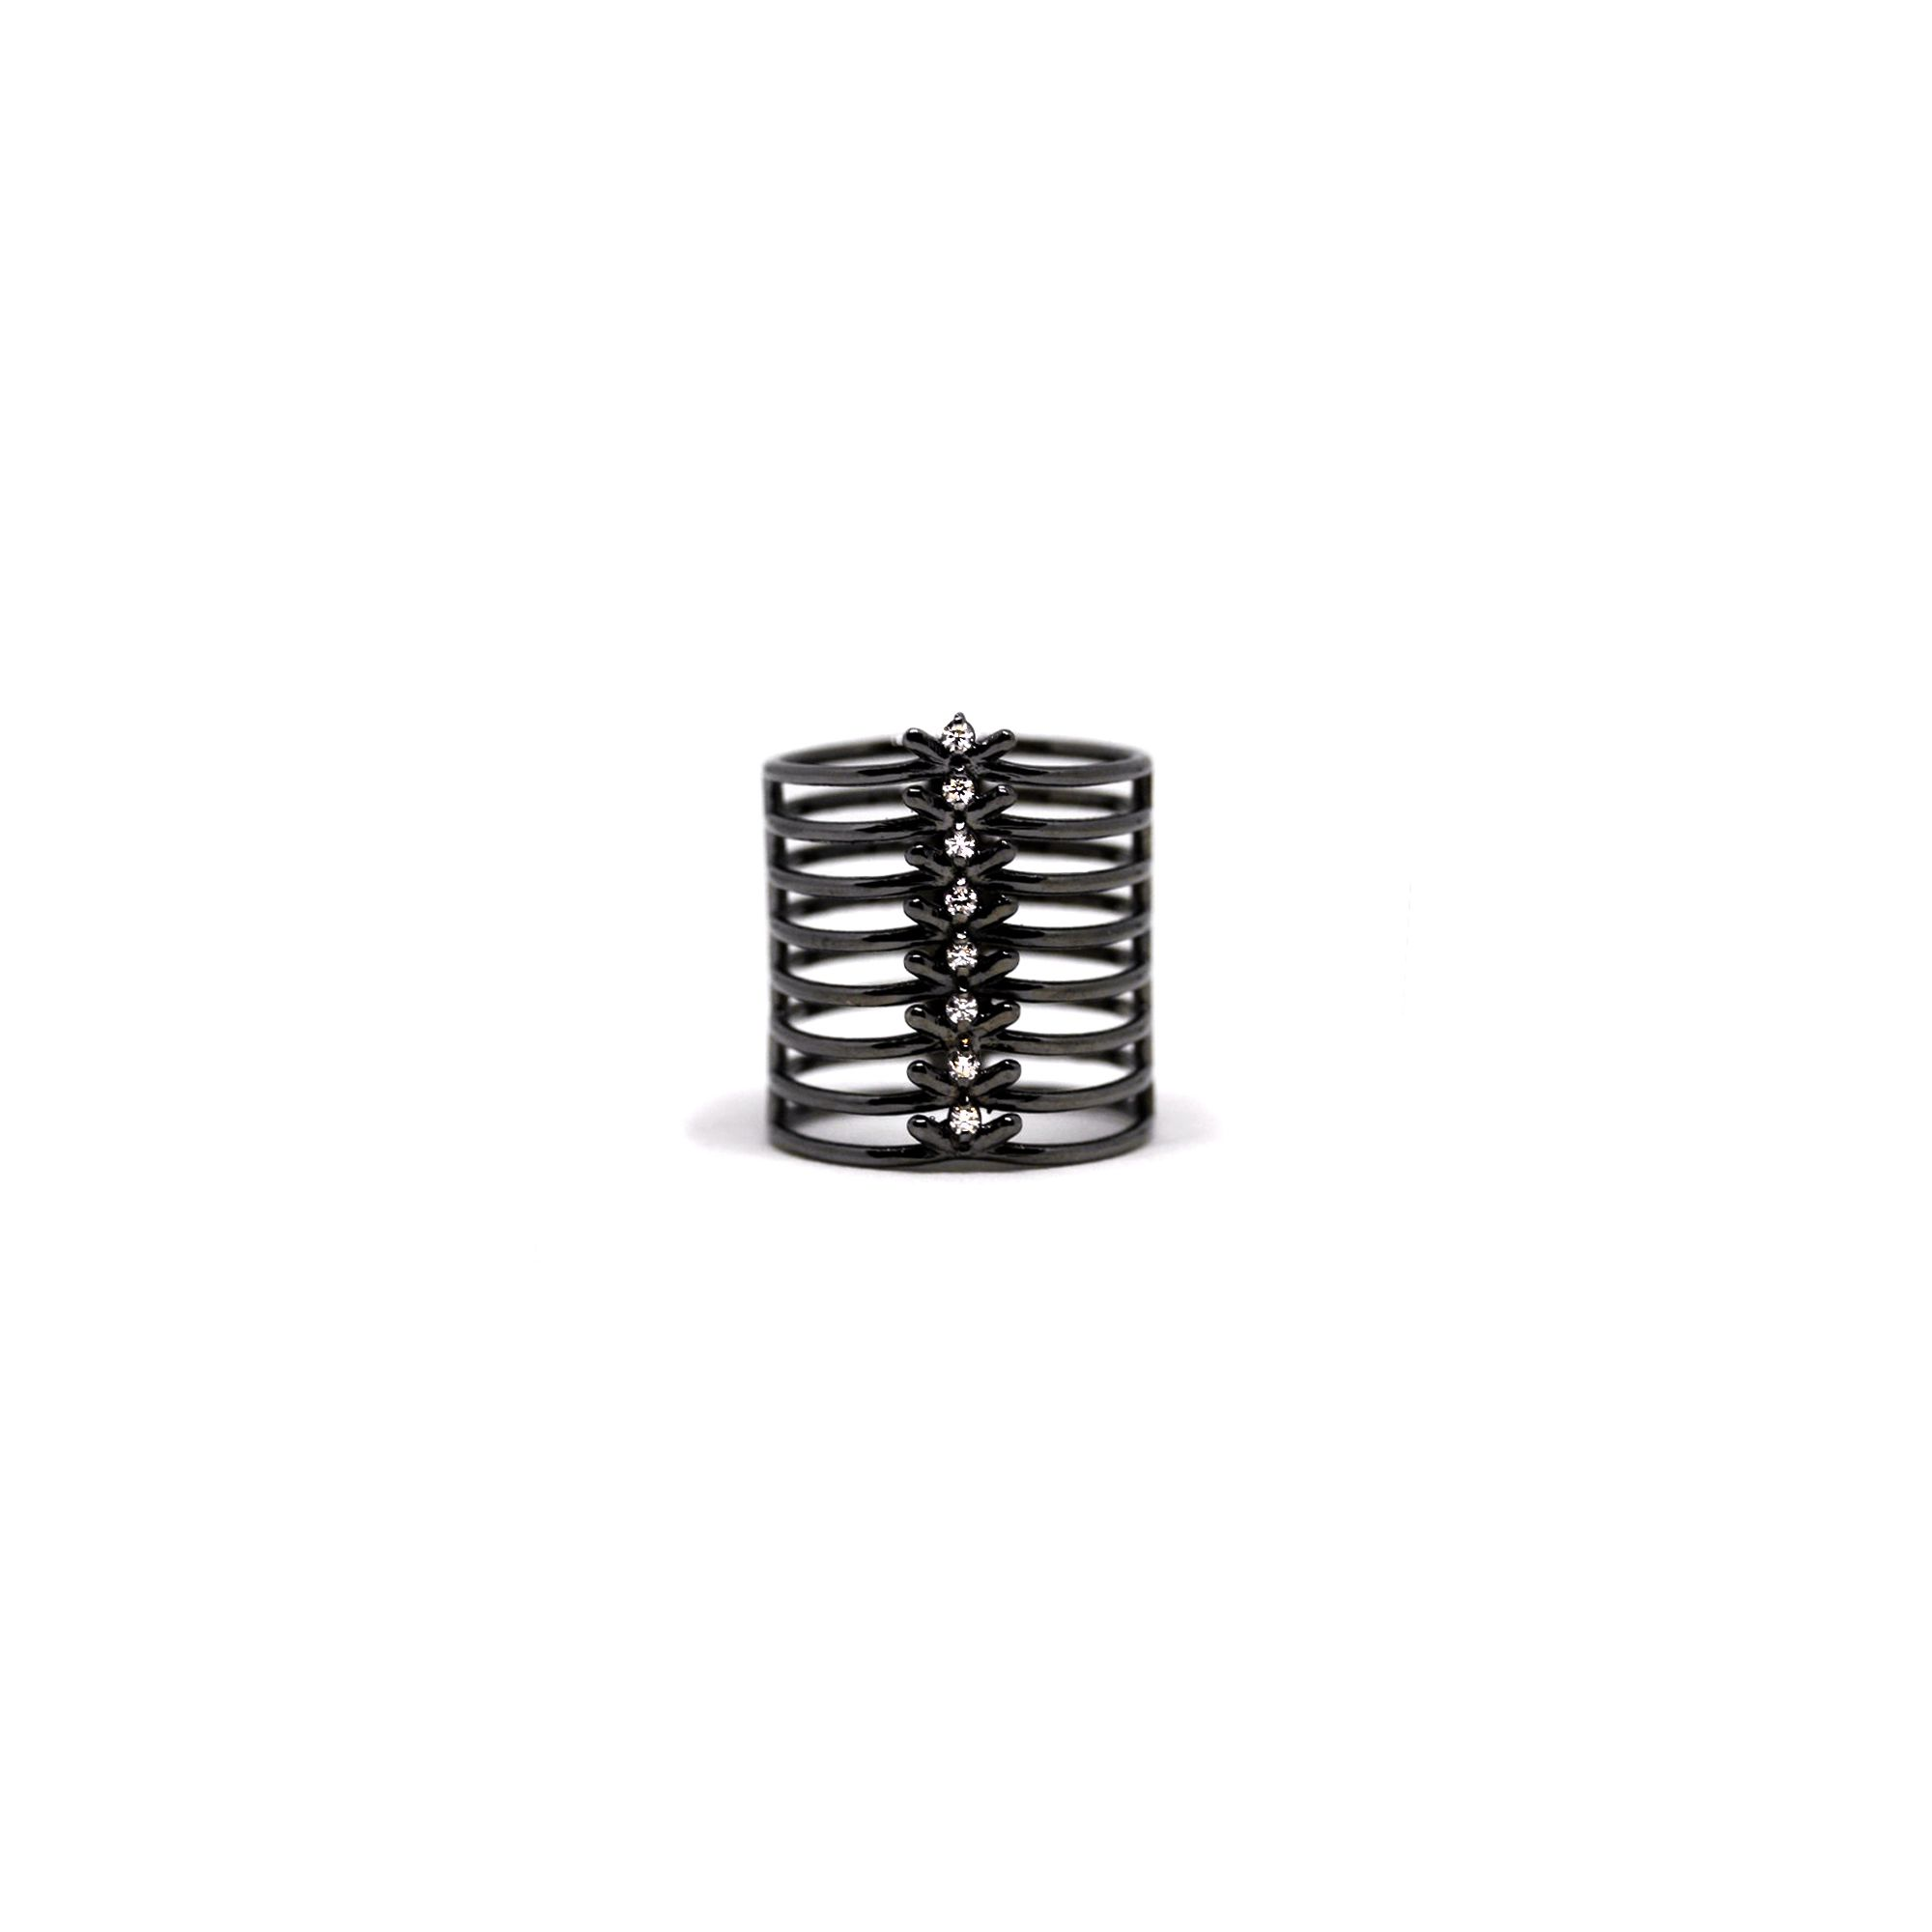 8 element 'Spinae' ring Black silver ring